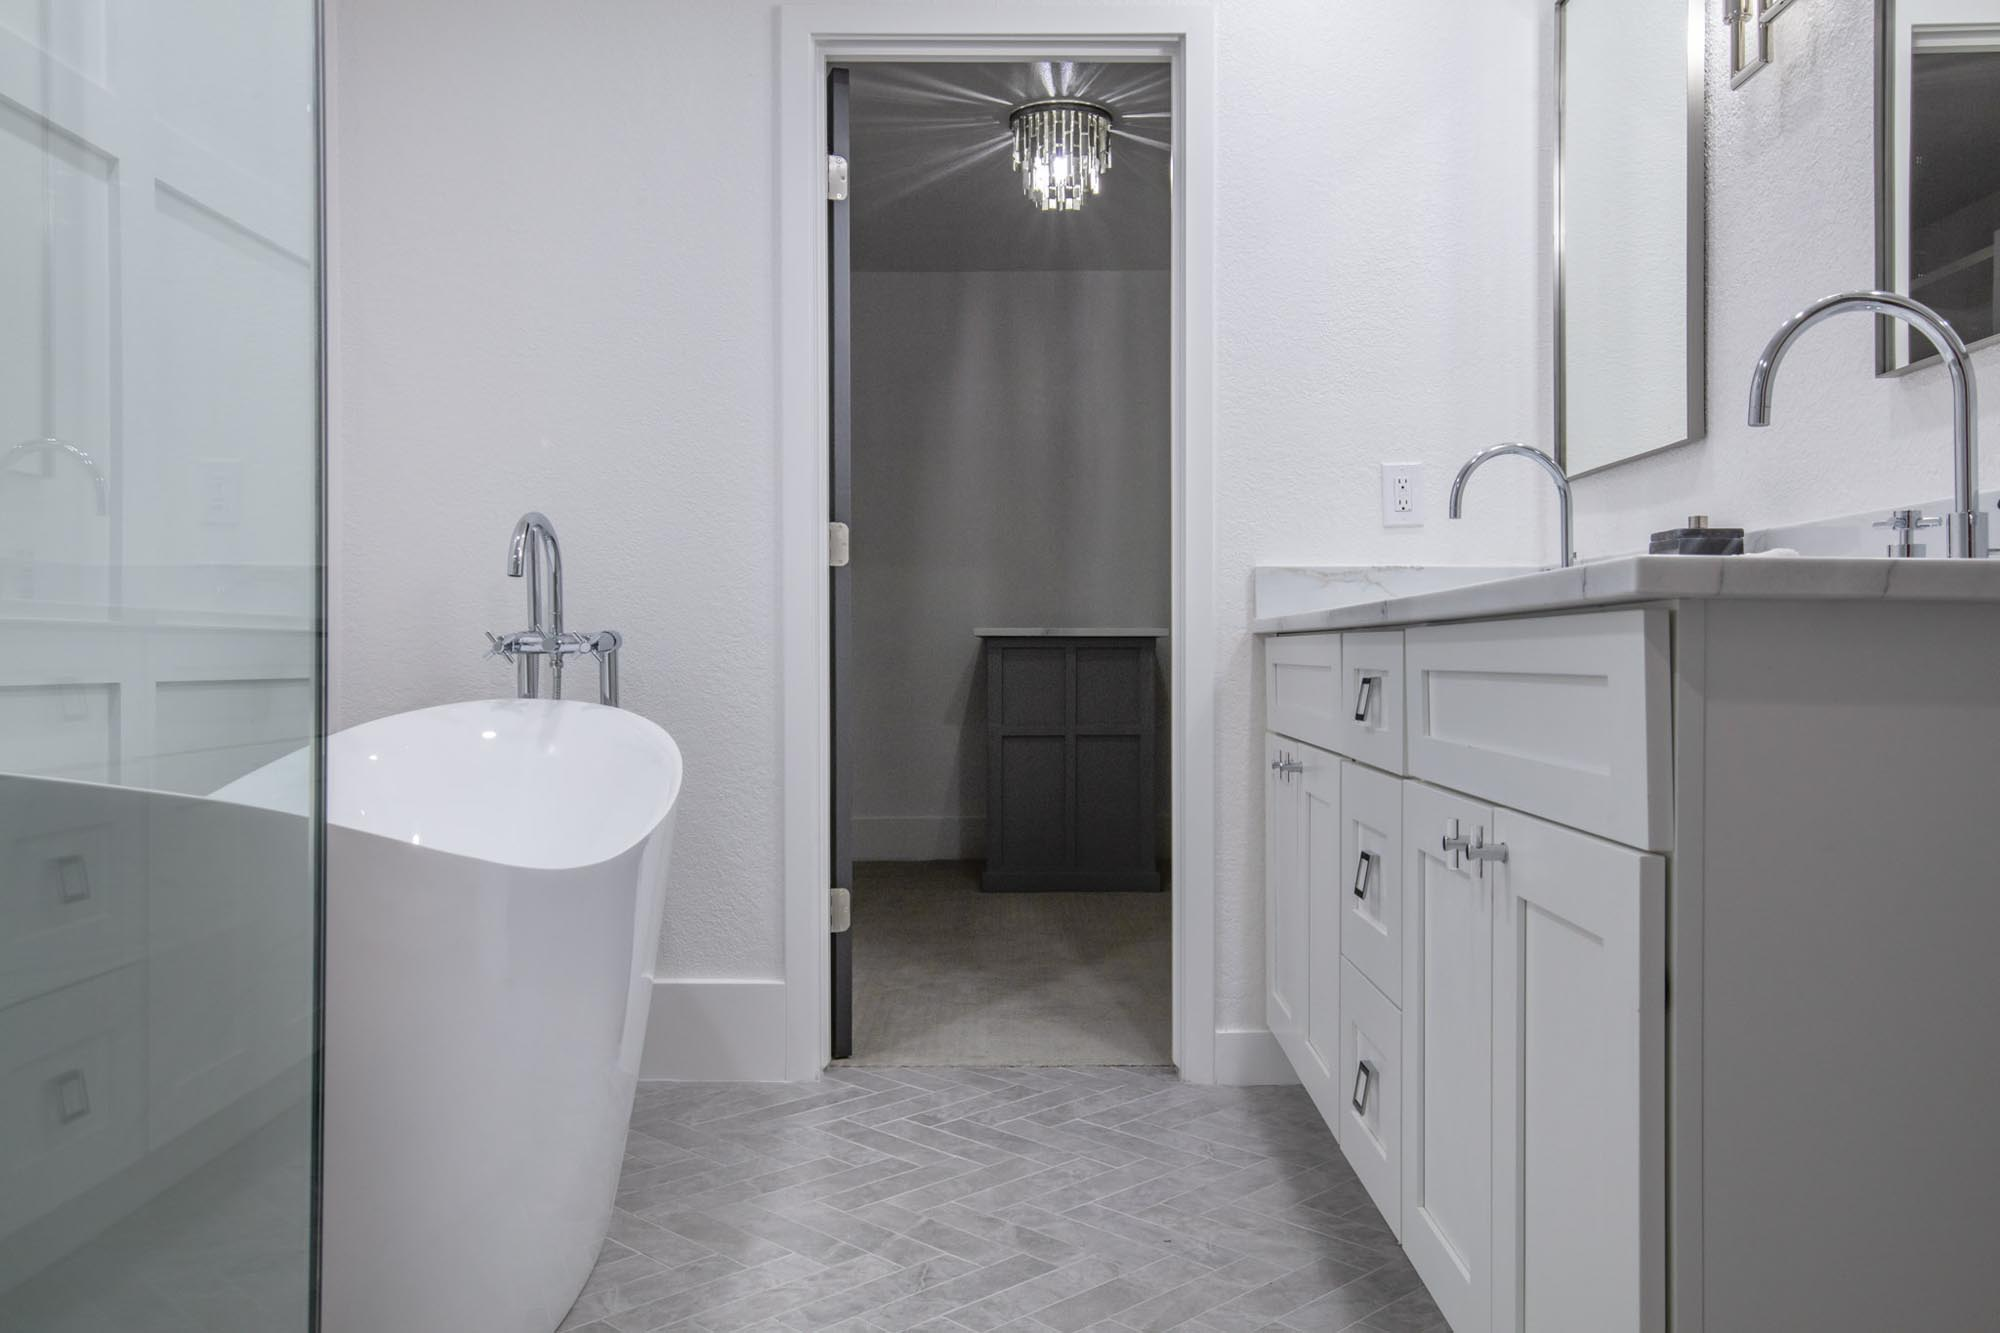 Bathroom entryway with chandelier